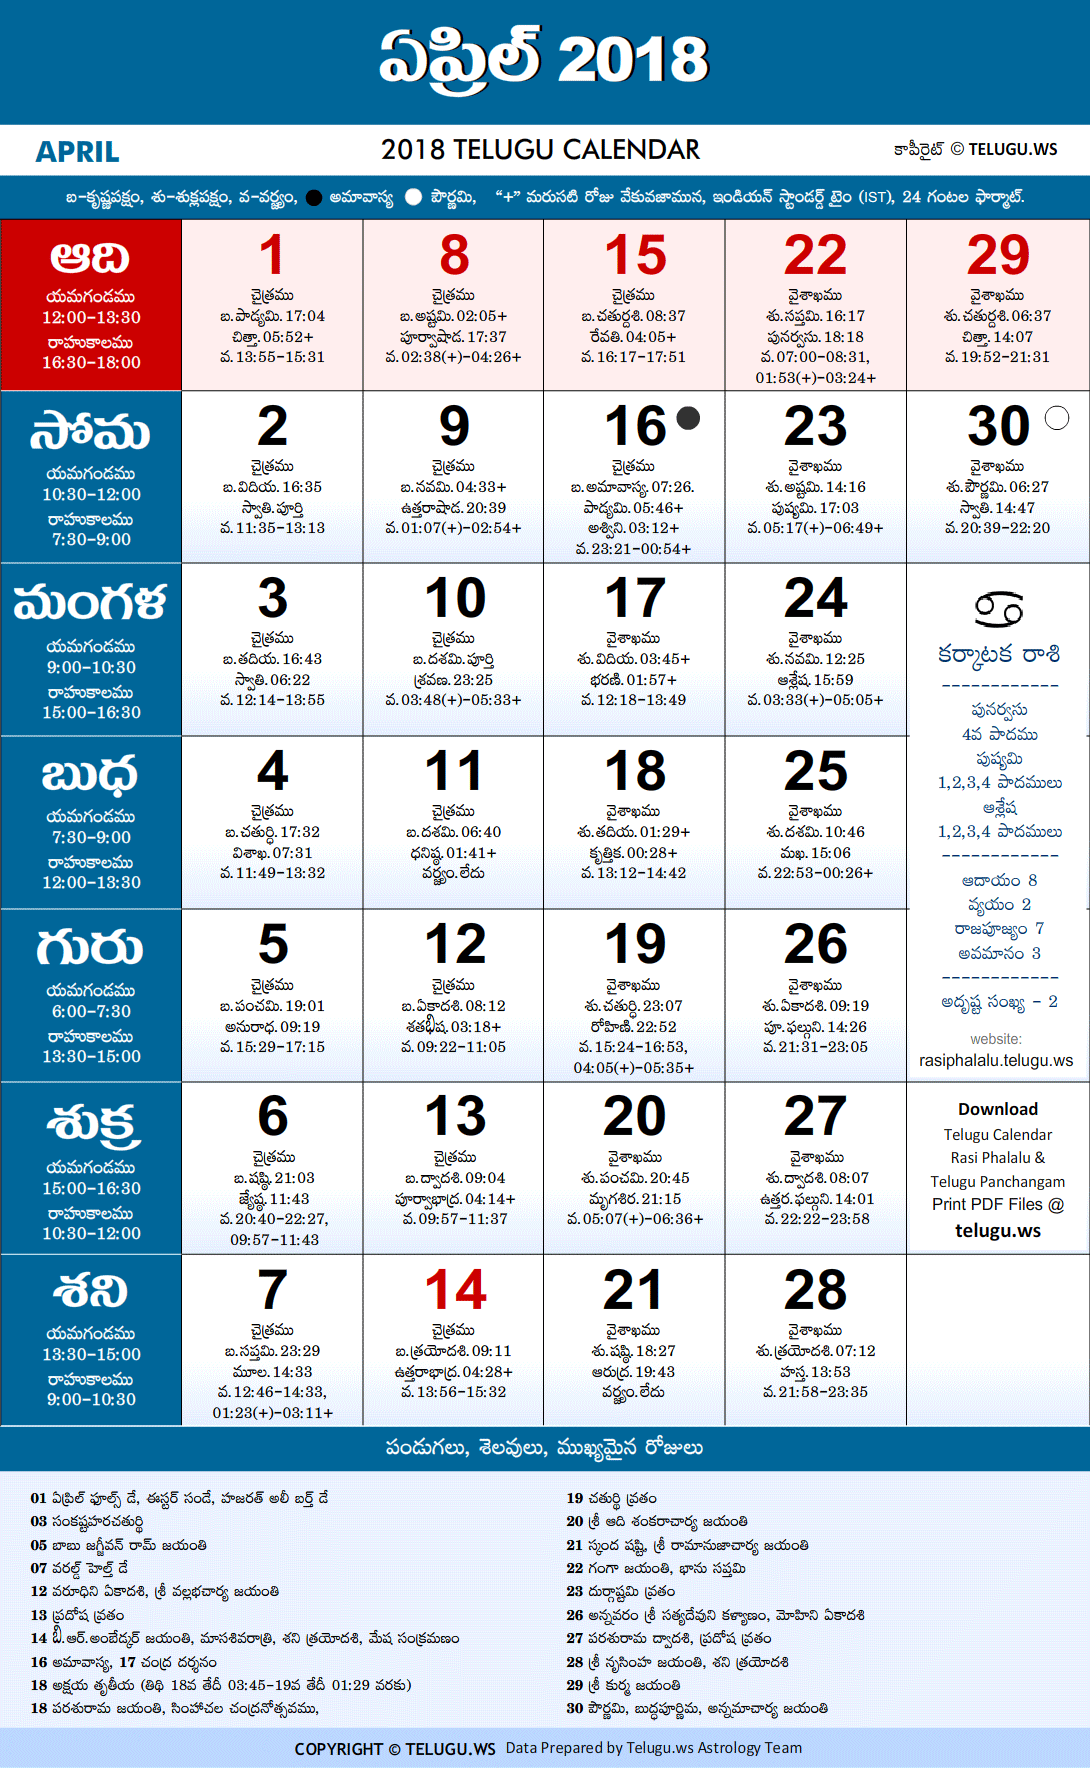 Telugu Calendar 2018 April Festivals and Holidays